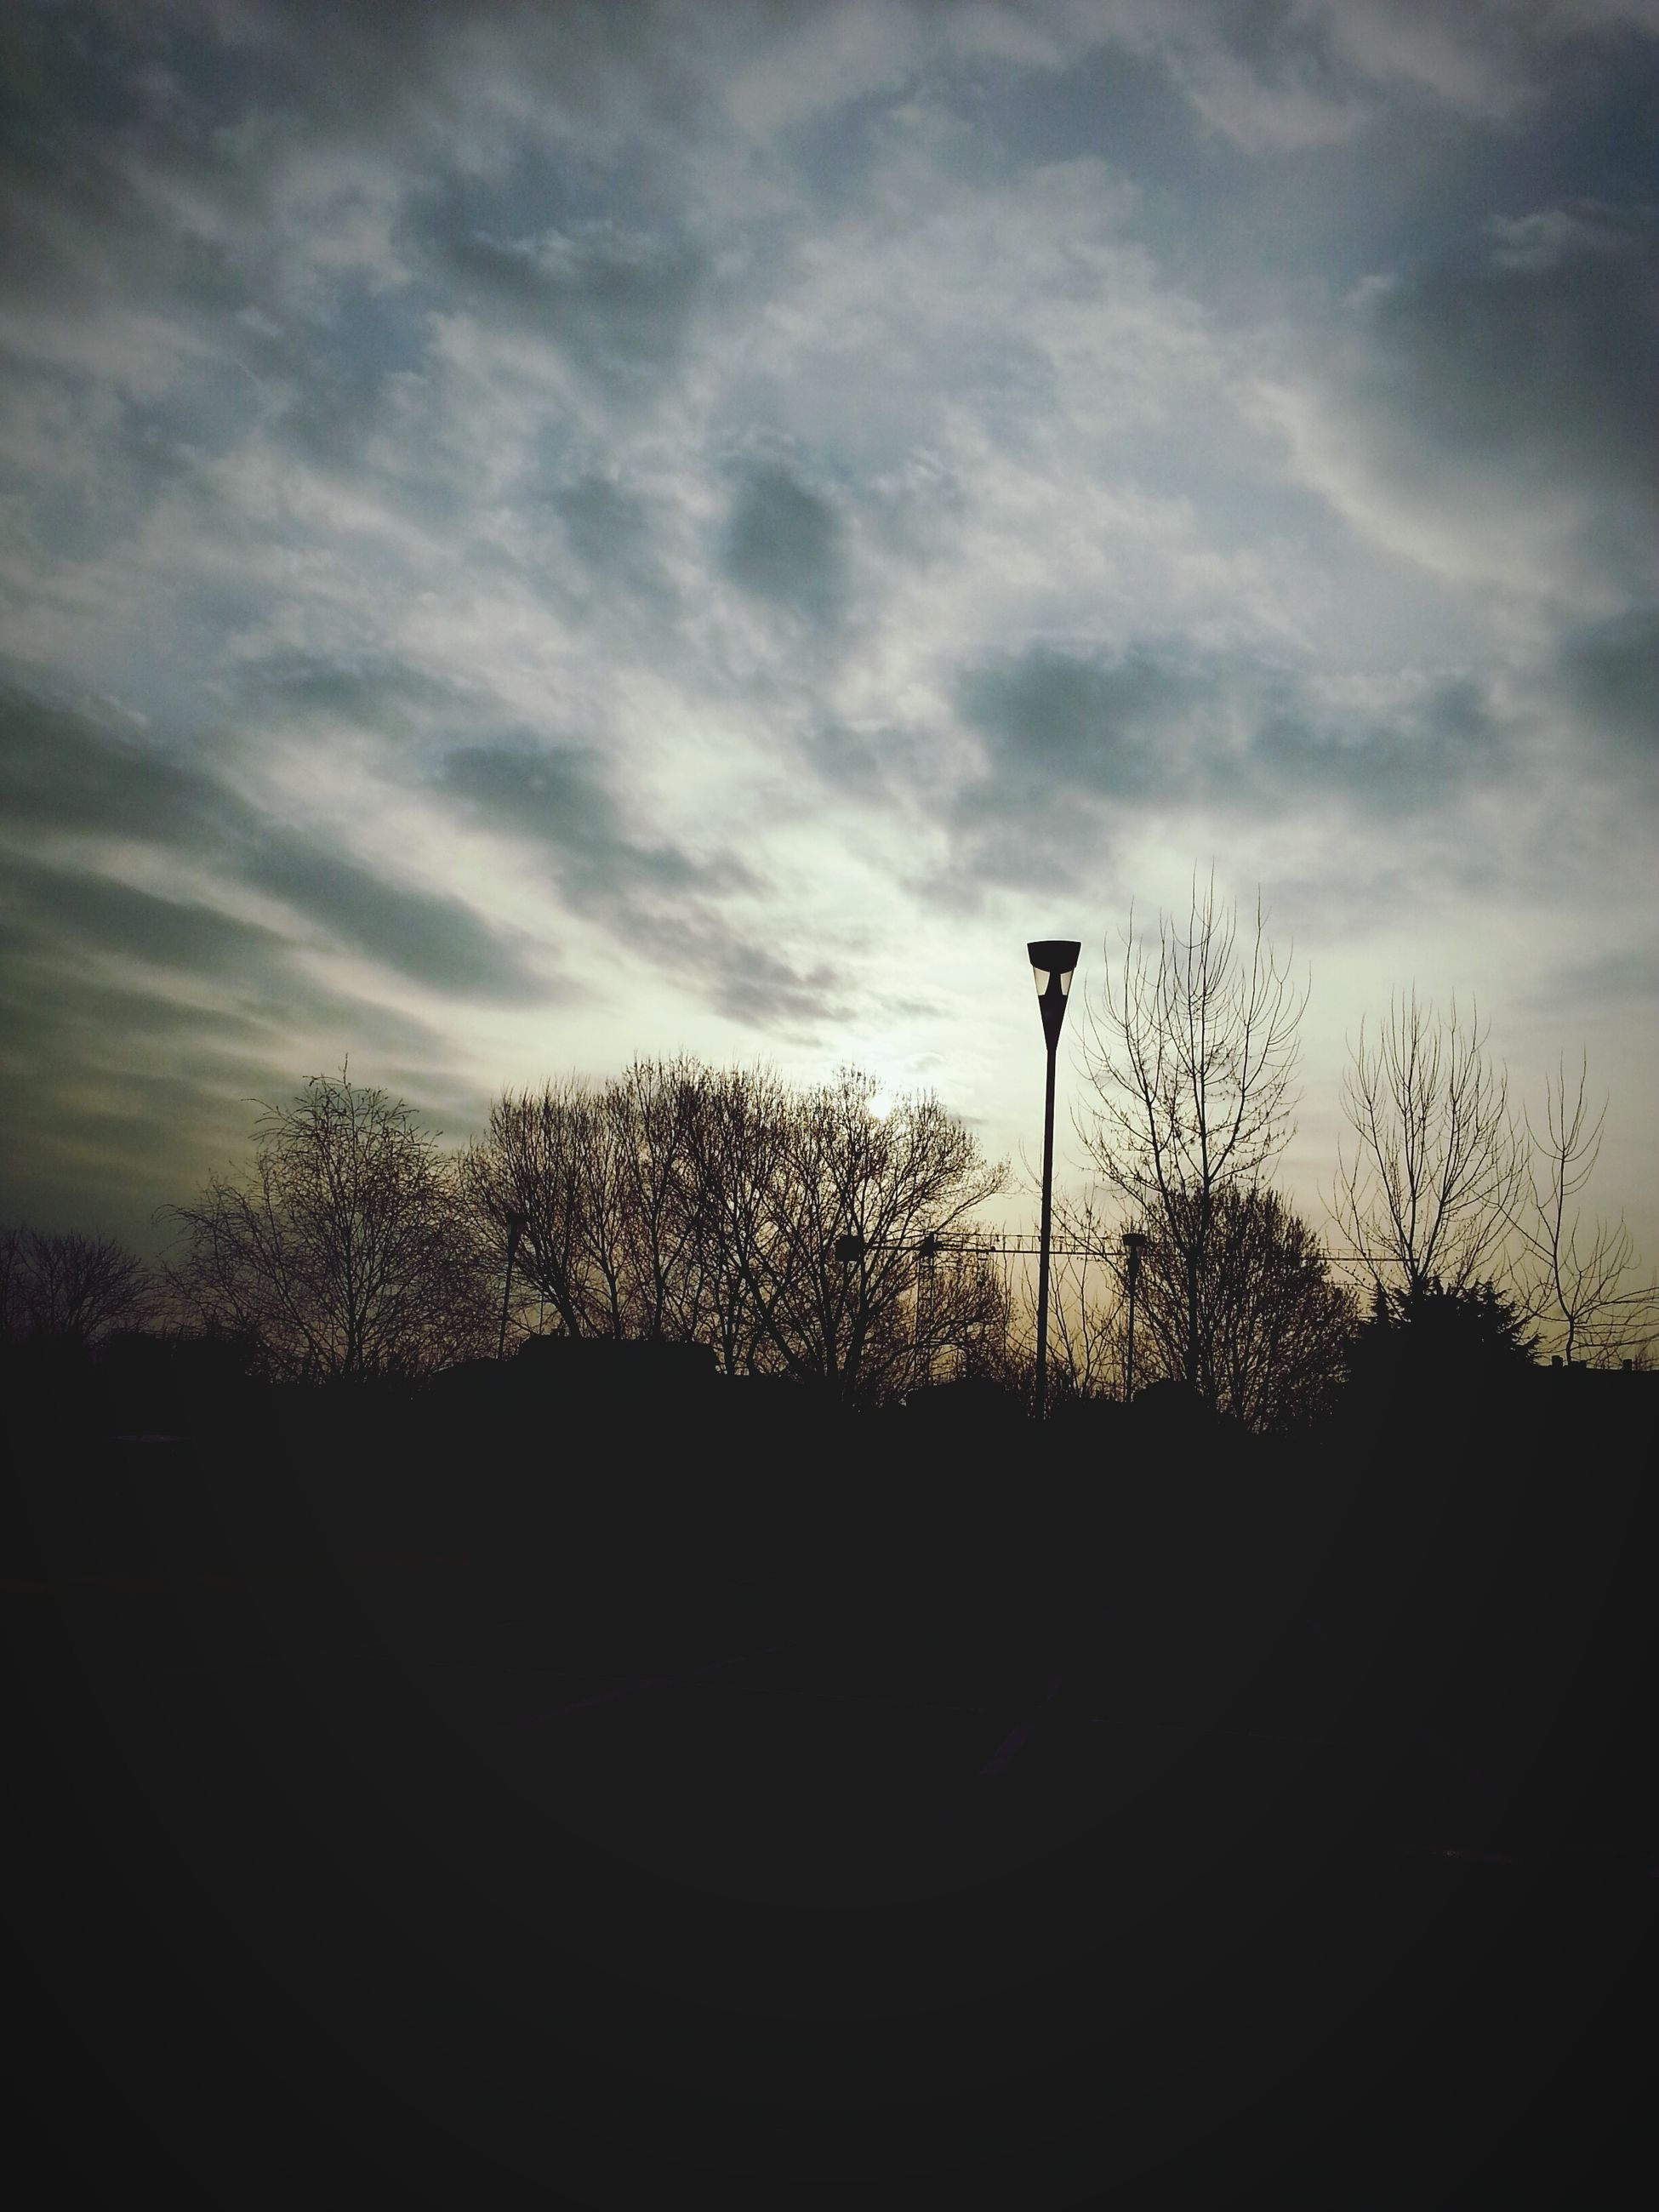 silhouette, sky, street light, tree, sunset, cloud - sky, lighting equipment, tranquility, nature, low angle view, dusk, tranquil scene, beauty in nature, cloud, dark, outdoors, cloudy, scenics, growth, no people